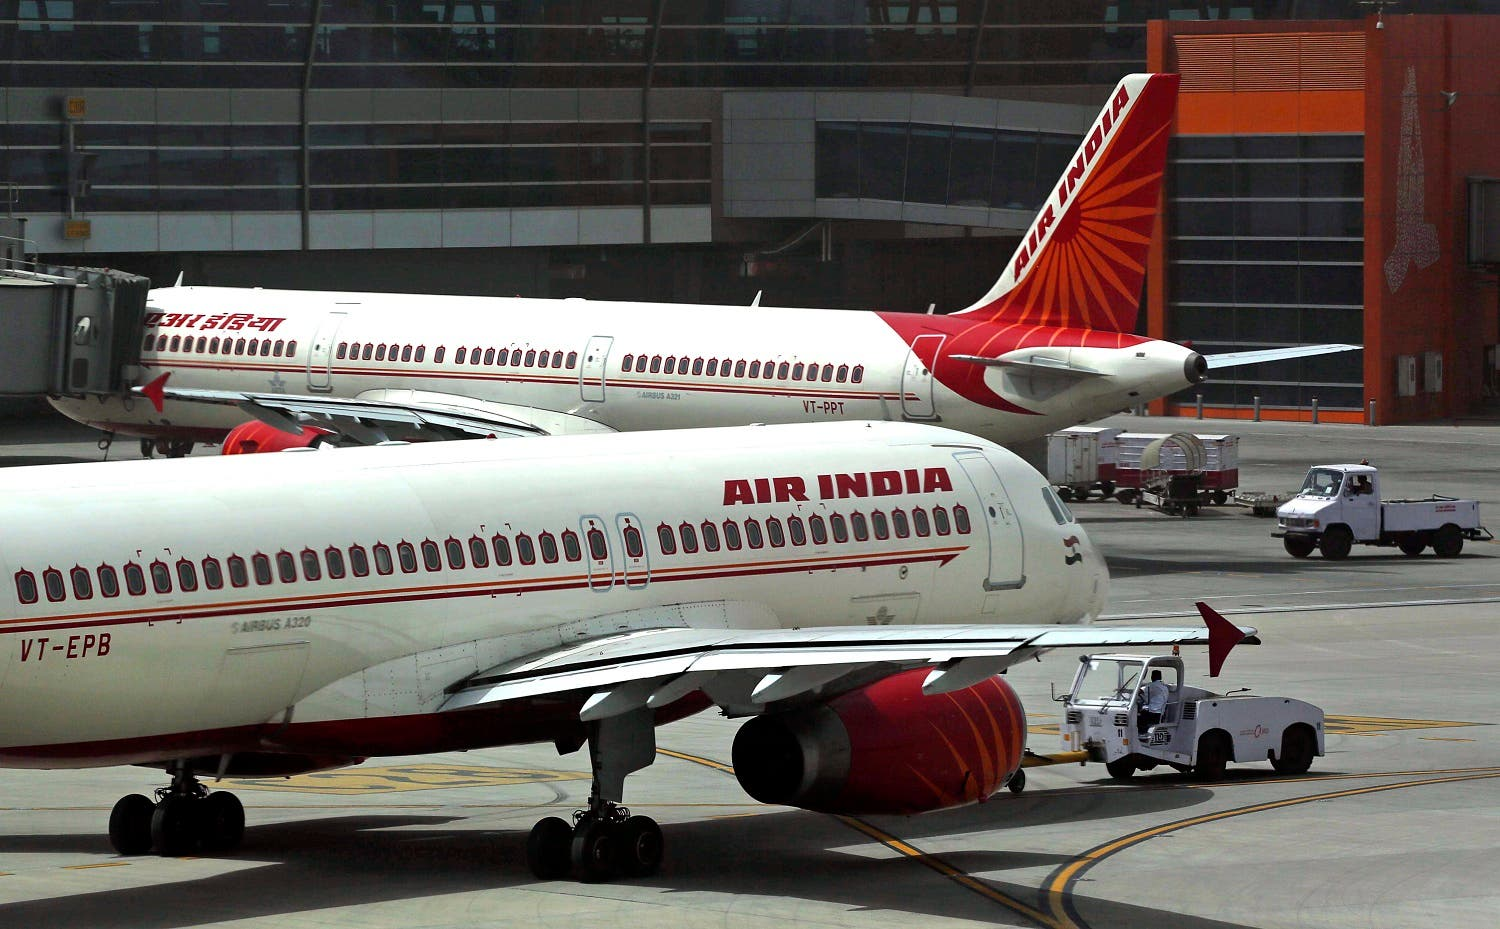 Air India planes parked on the tarmac at the Terminal 3 of Indira Gandhi International Airport in New Delhi. (File photo: AP)